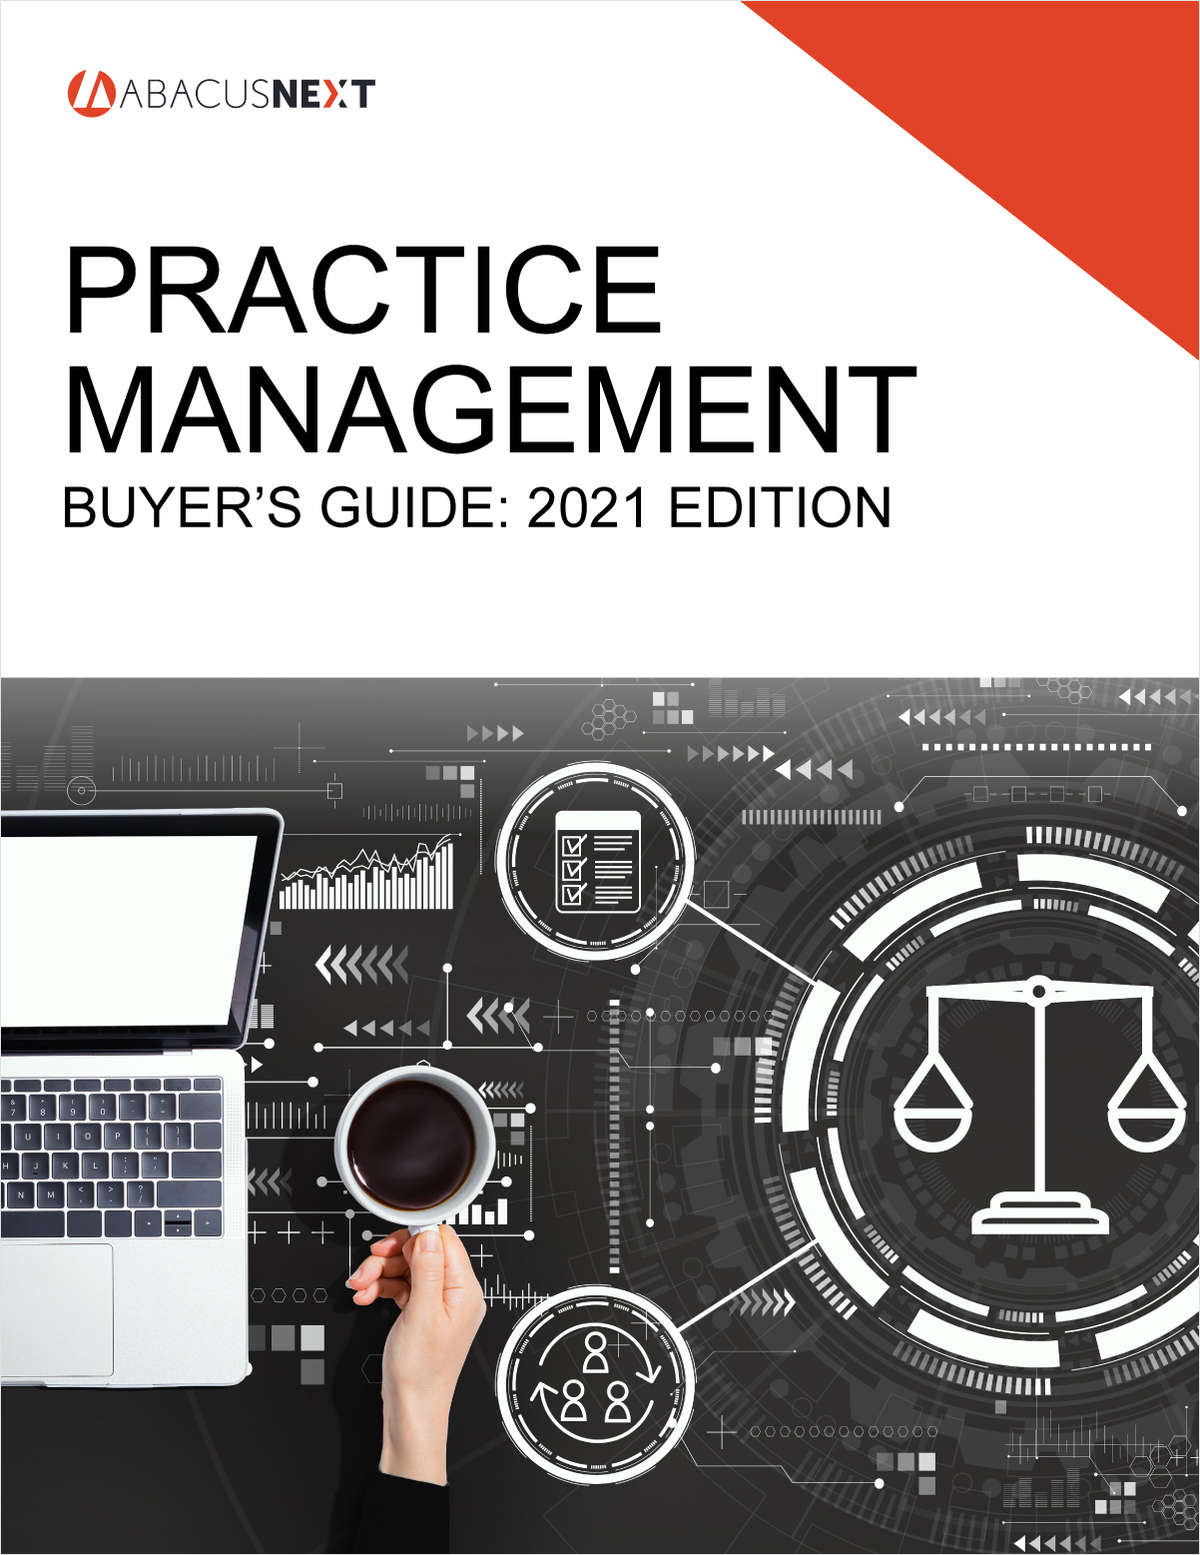 Practice Management Buyer's Guide: 2021 Edition